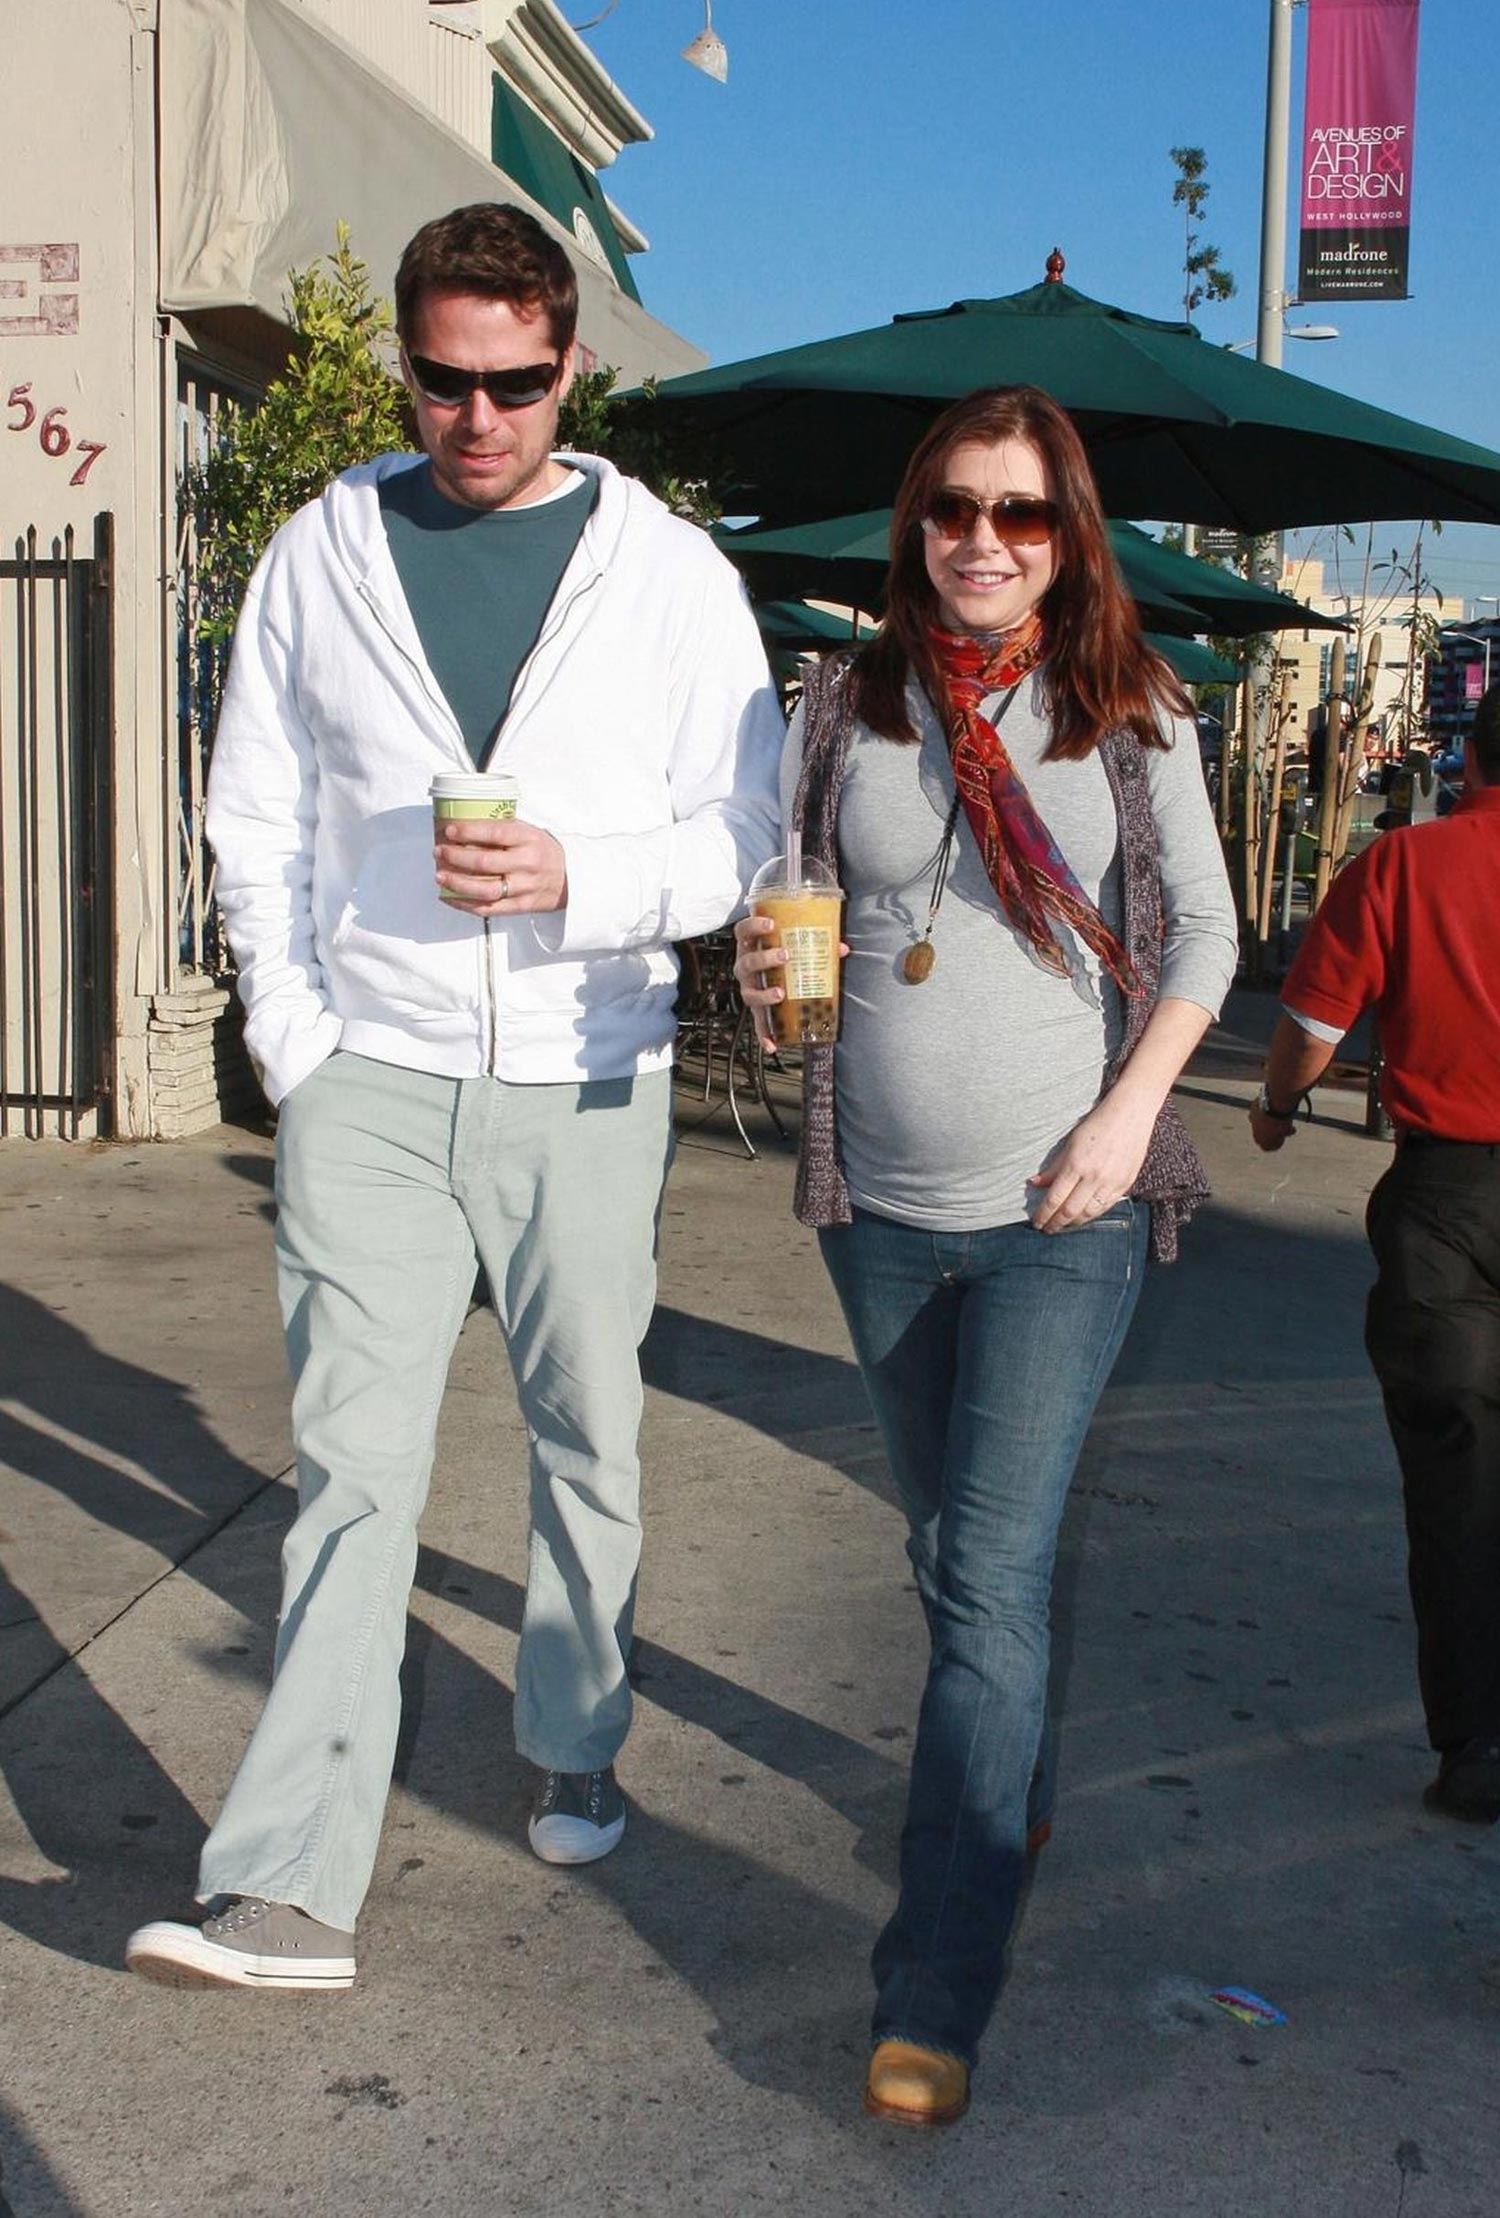 http://whedon.info/IMG/jpg/alyson-hannigan-alexis-denisof-drinks-urth-caffe-los-angeles-paparazzi-hq-02.jpg